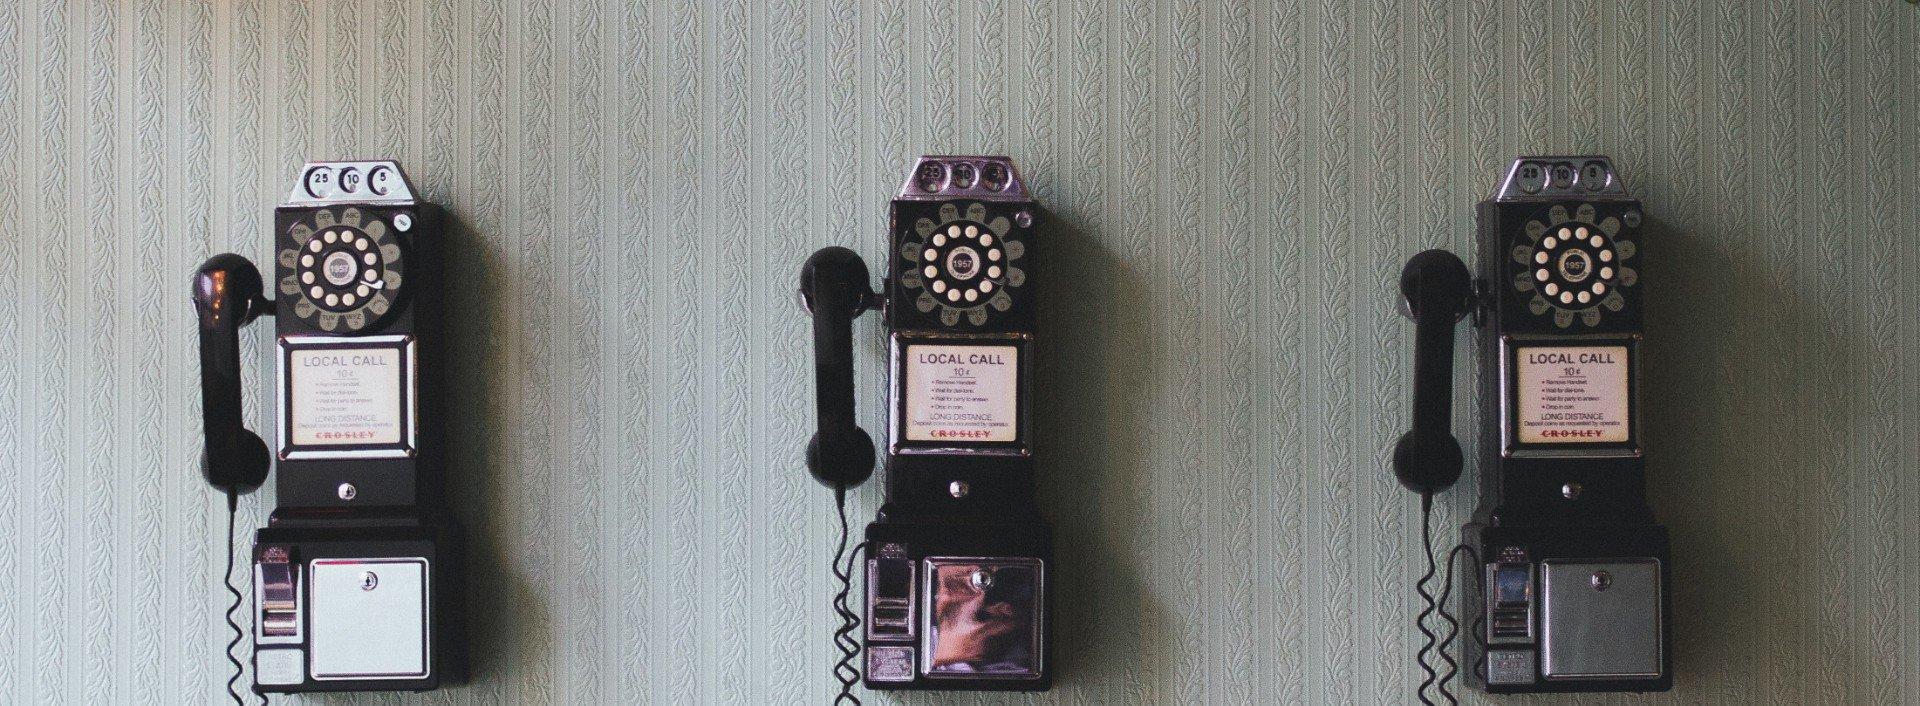 Root word loqu: three vintage telephones are lined up on a wall.